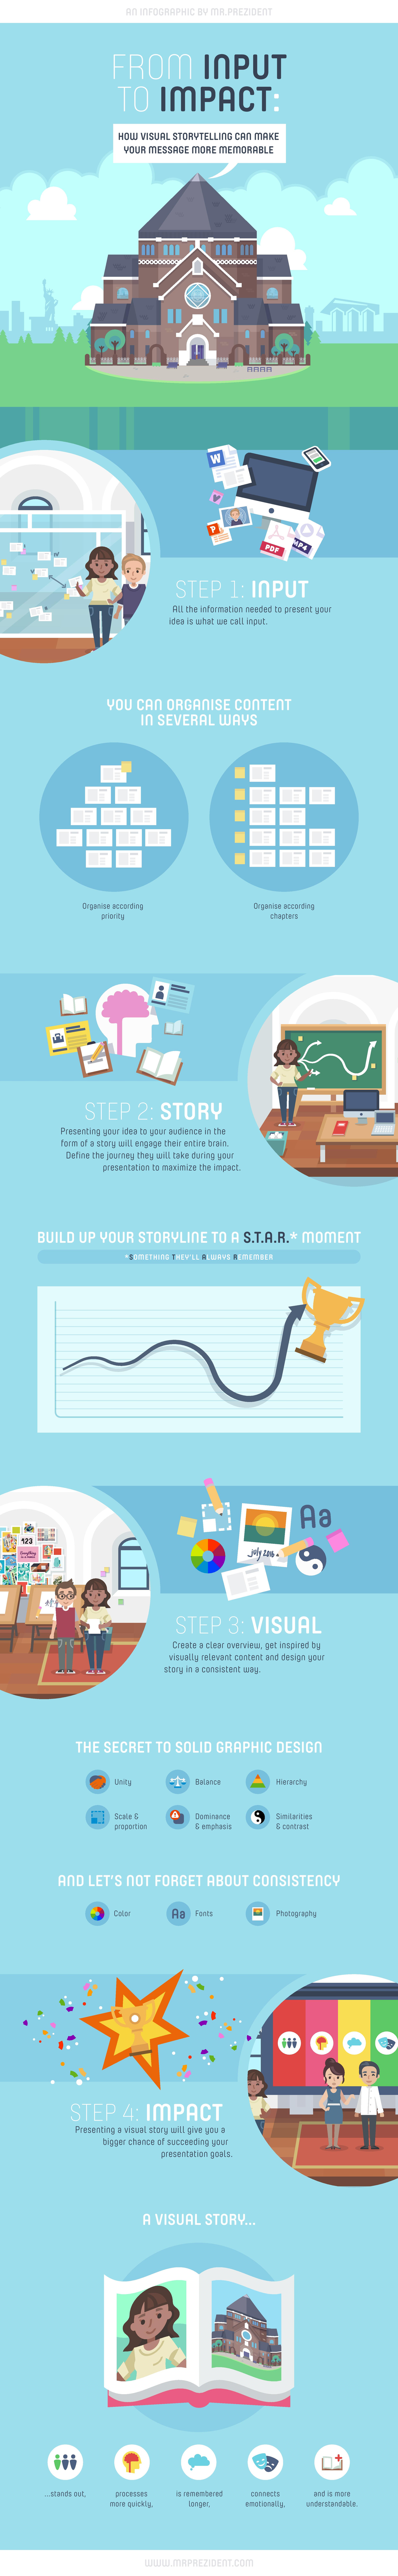 infographic-page-001